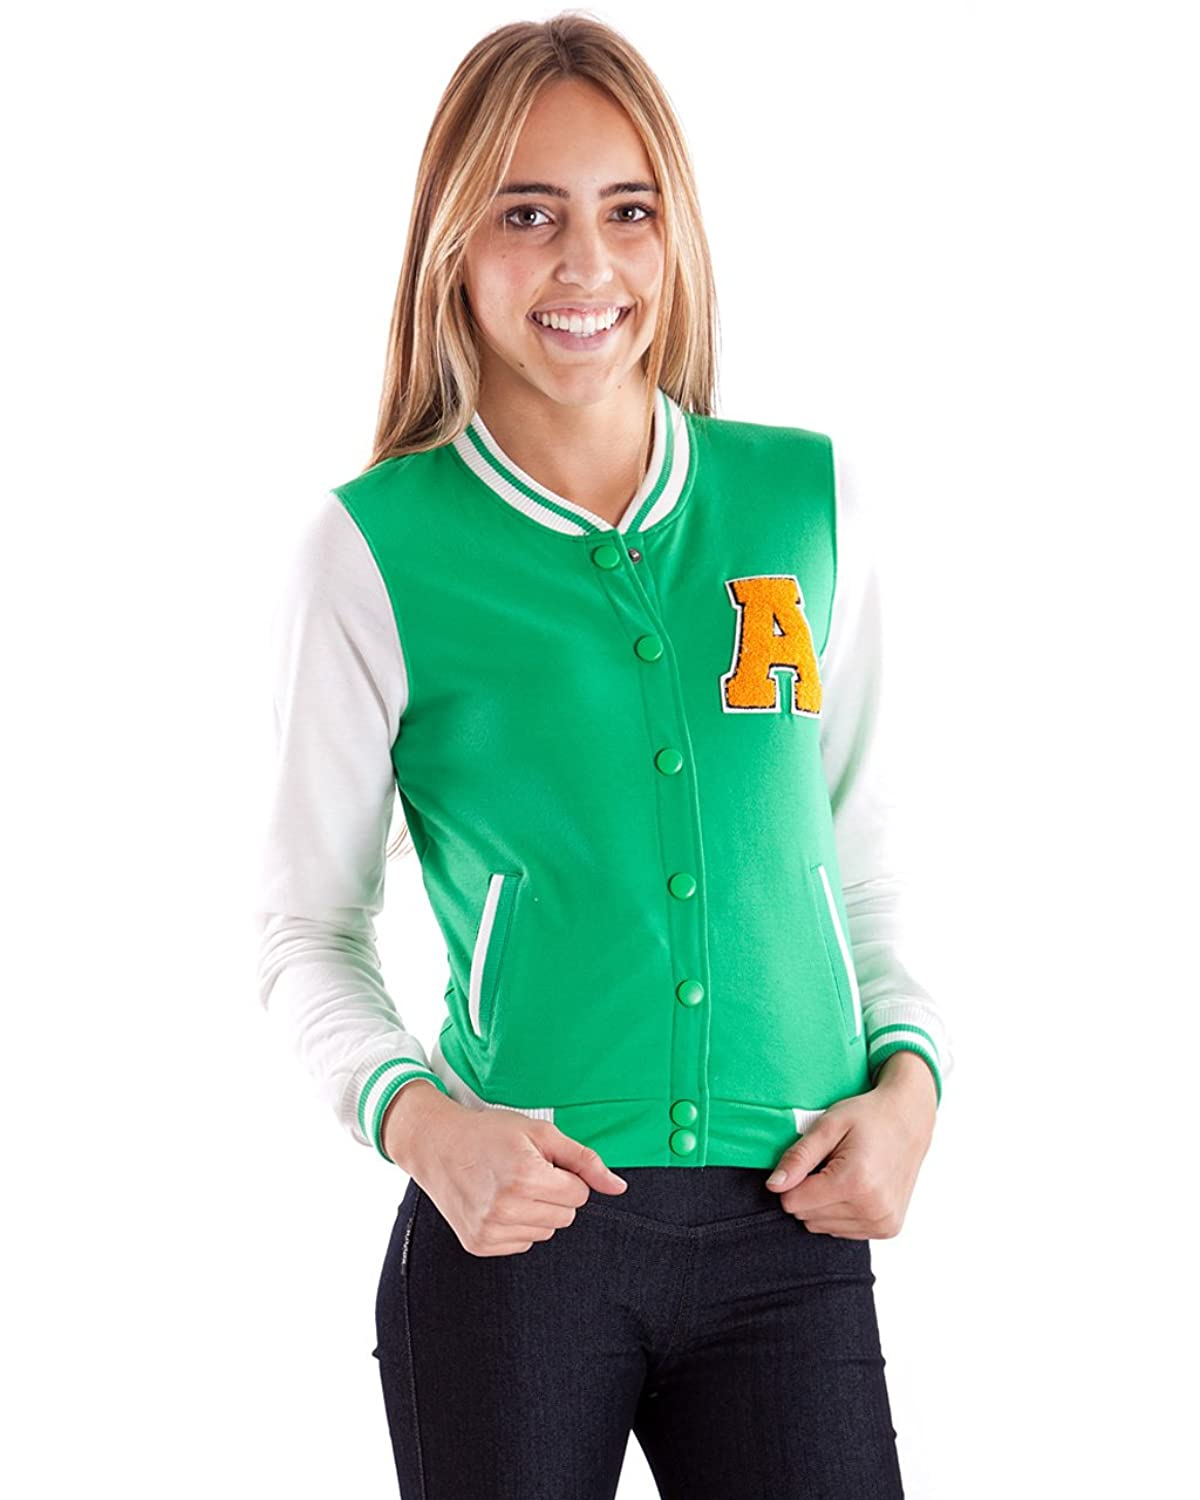 Clothes Effect Women's Jersey Letterman A Jacket